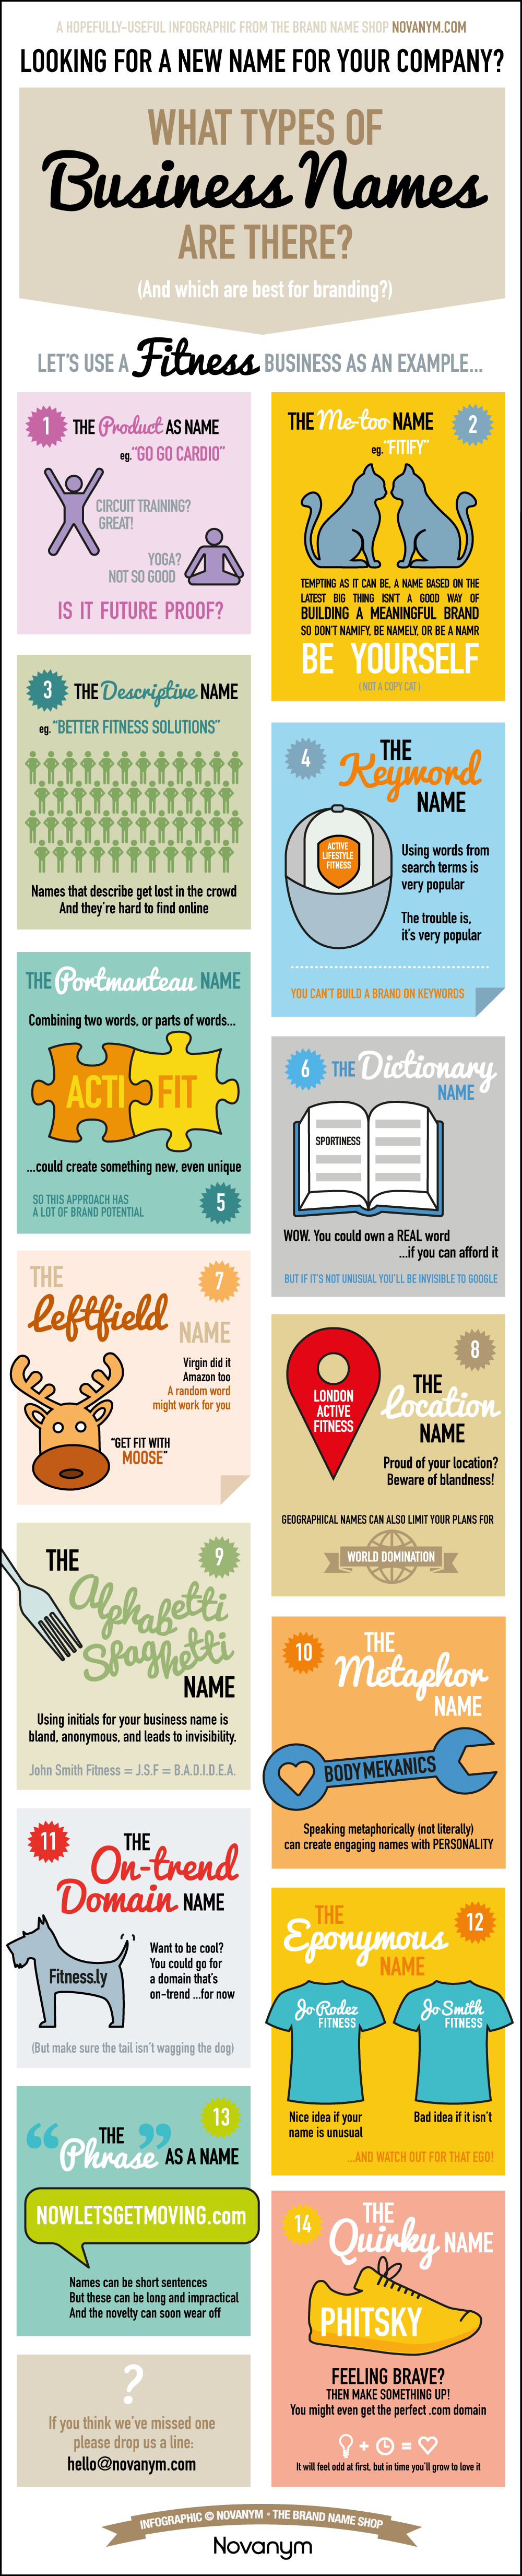 Novanym - business names infographic